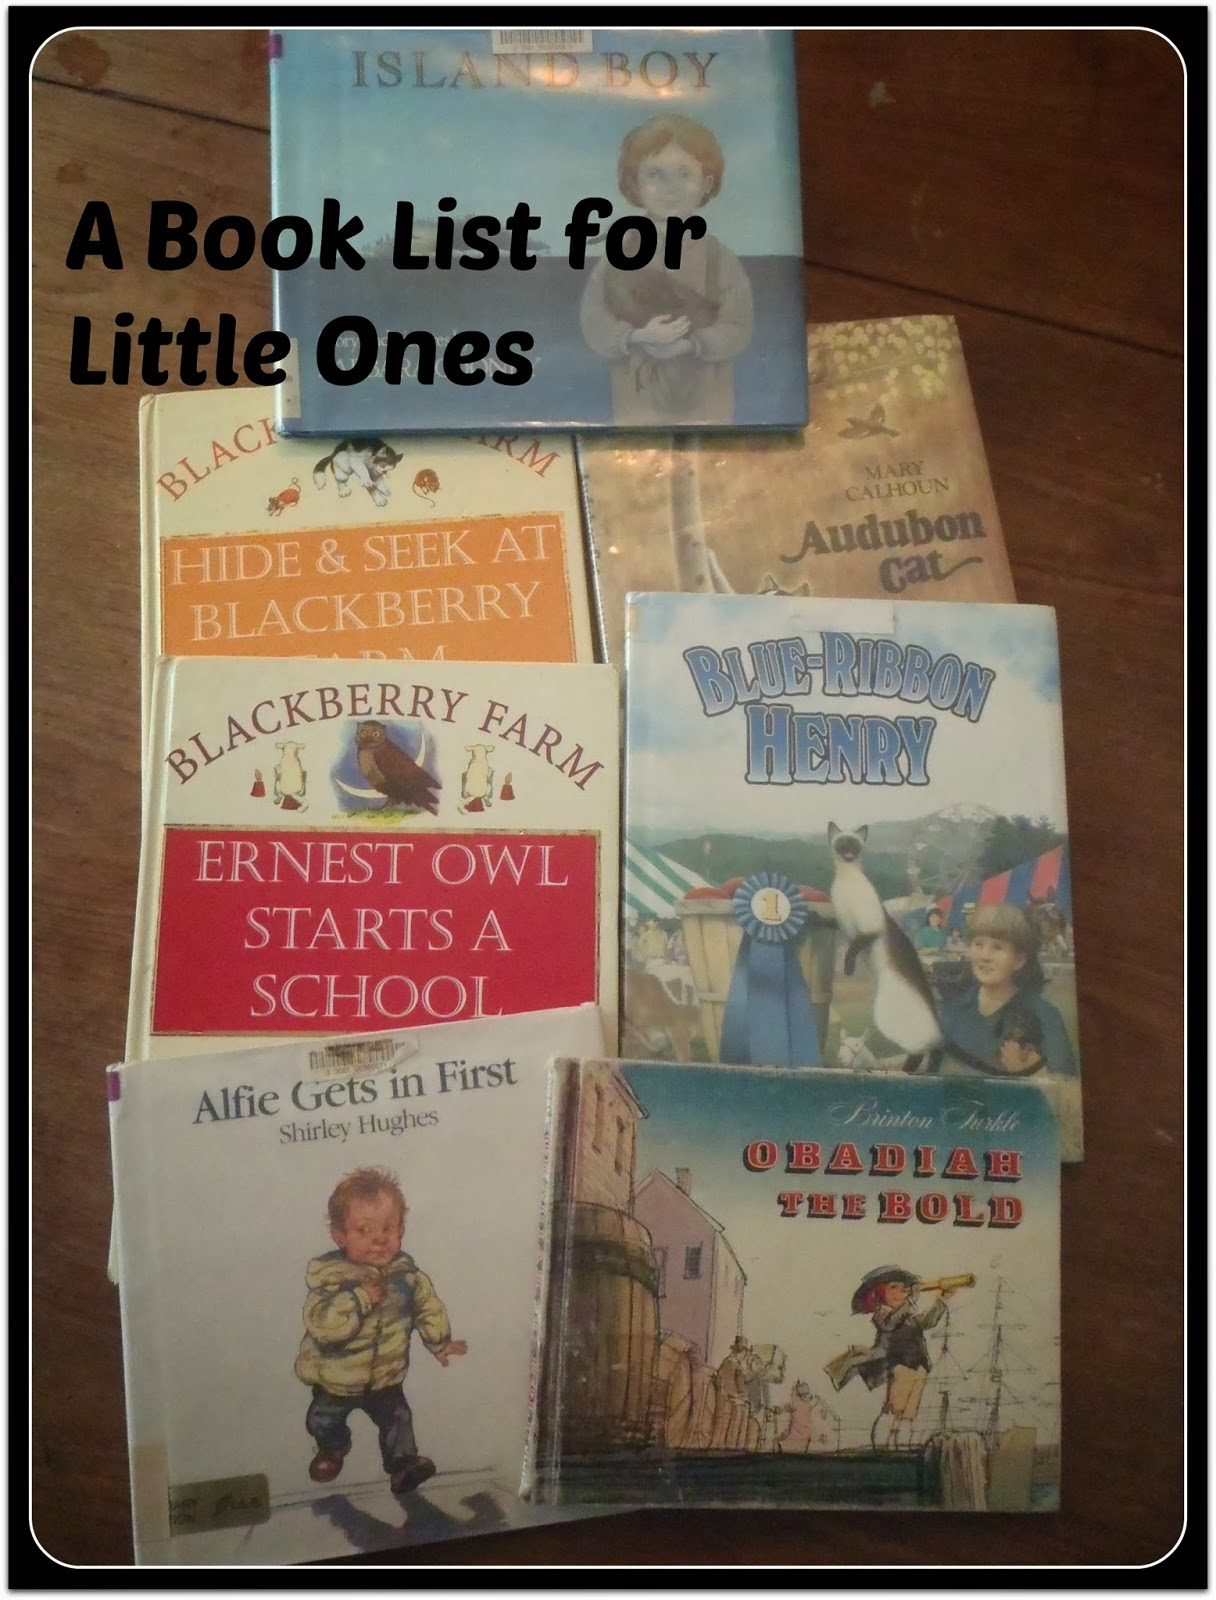 A Book List for Little Ones